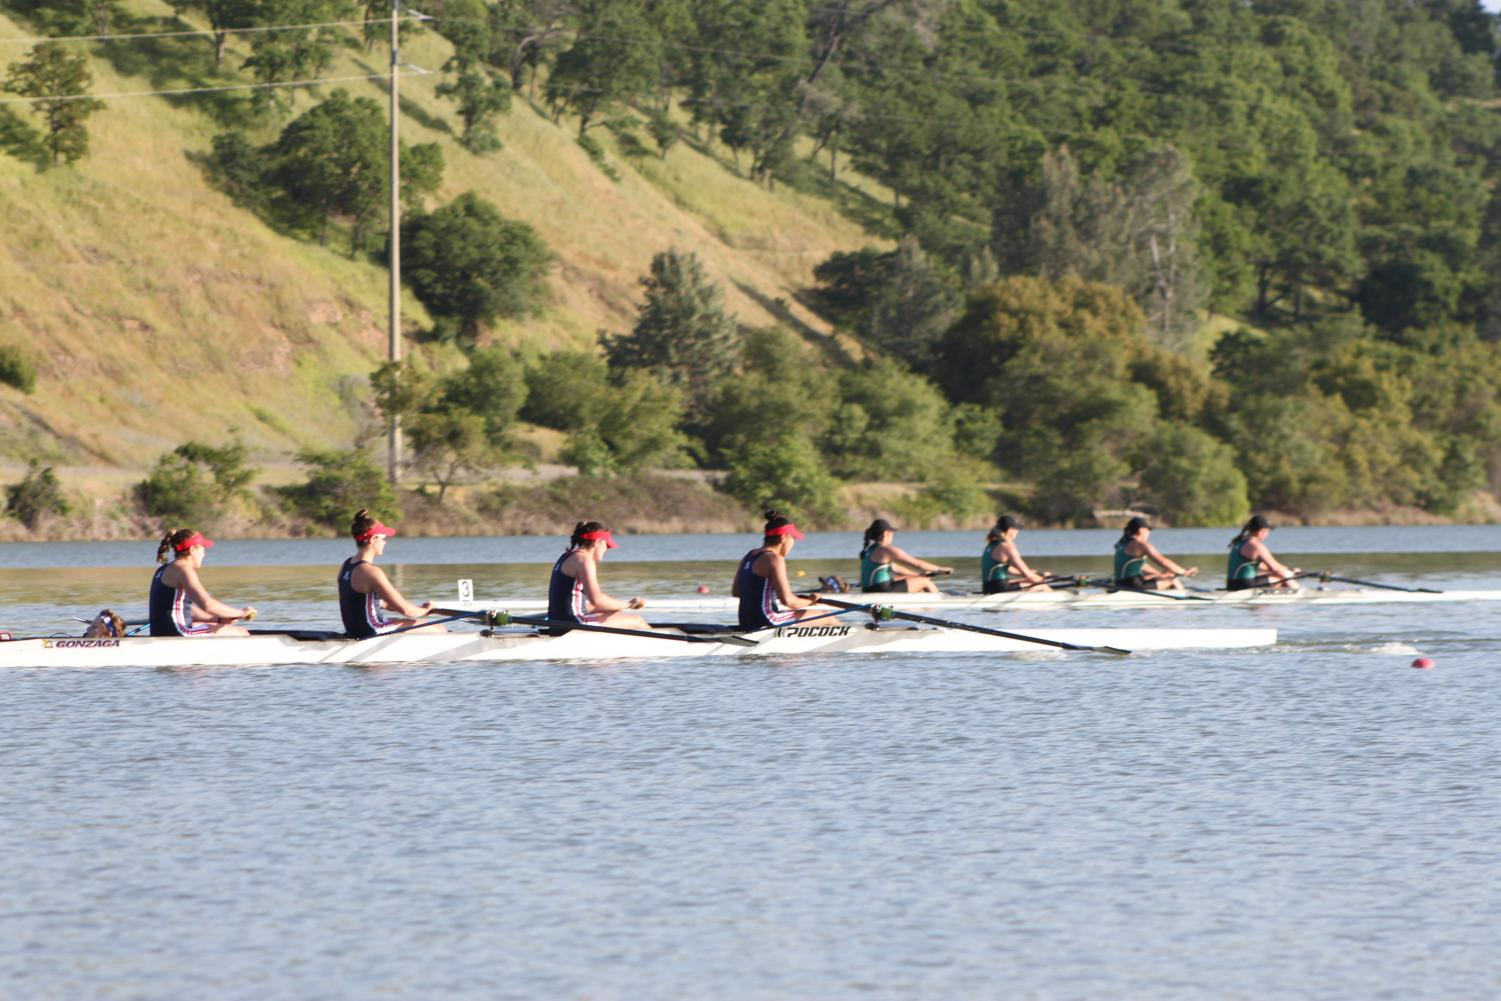 Sacramento State rowing varsity-four team, right, races against Gonzaga, left, Alabama and the University of San Diego during the Lake Natoma Invitational on Sunday, April 15, 2018. Sac State finished third in event 20.